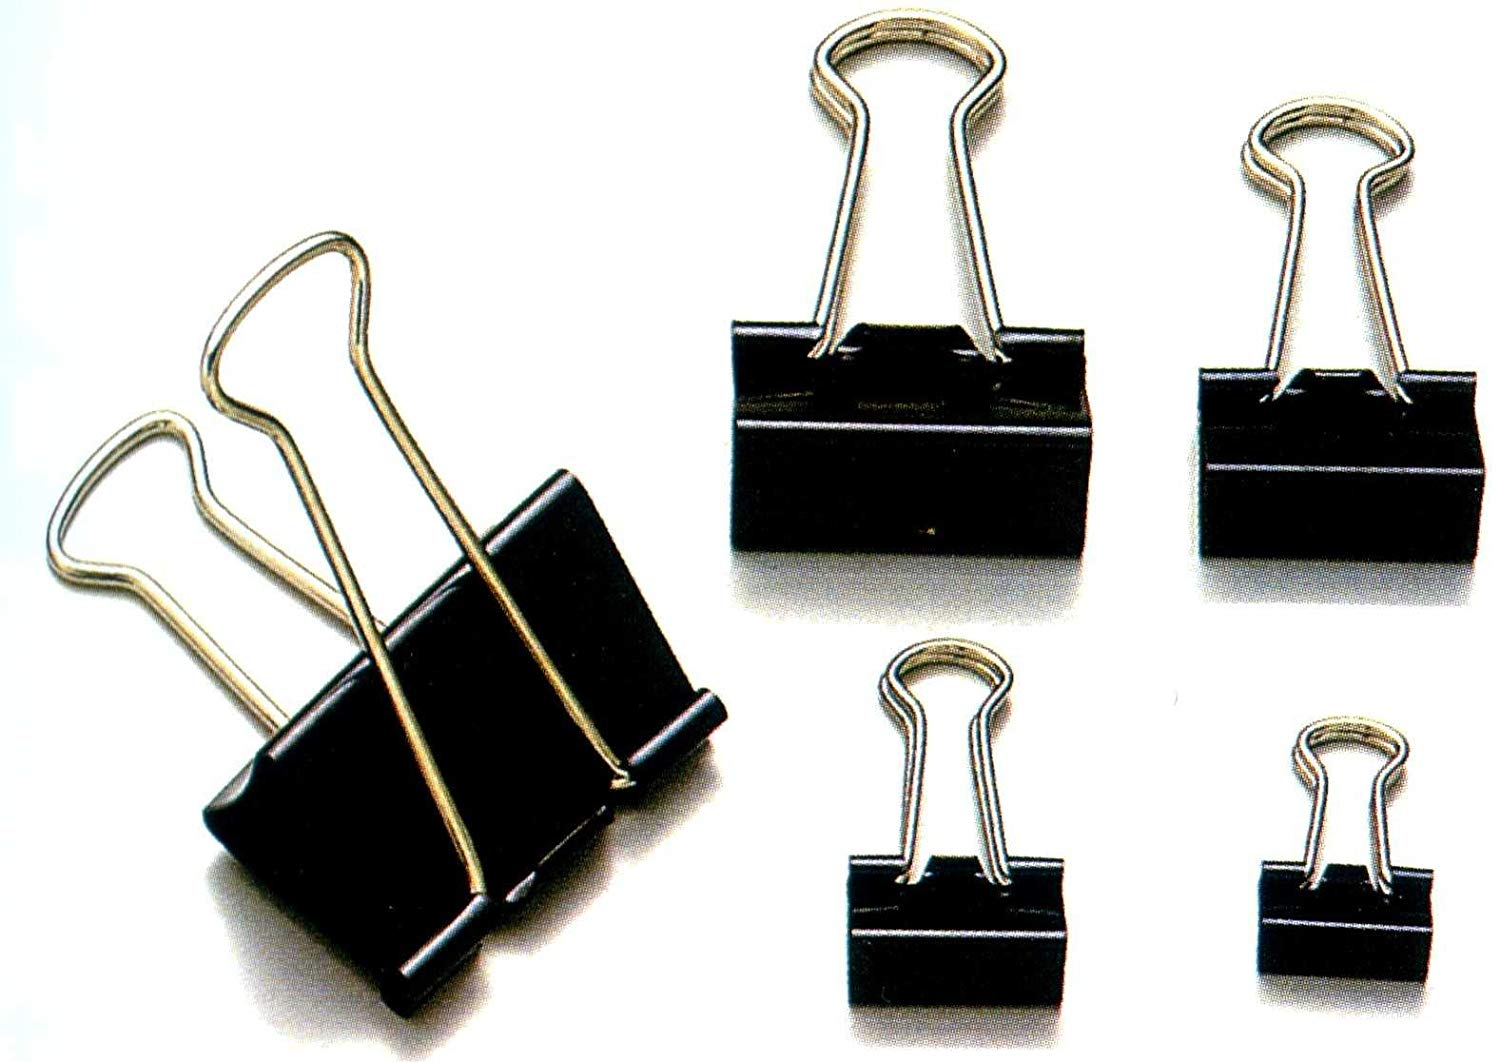 Penrote Assorted 6 Sizes Per Pack Black Binder Clips Holding Capacity,Paper Clamp, Metal Paper Clips